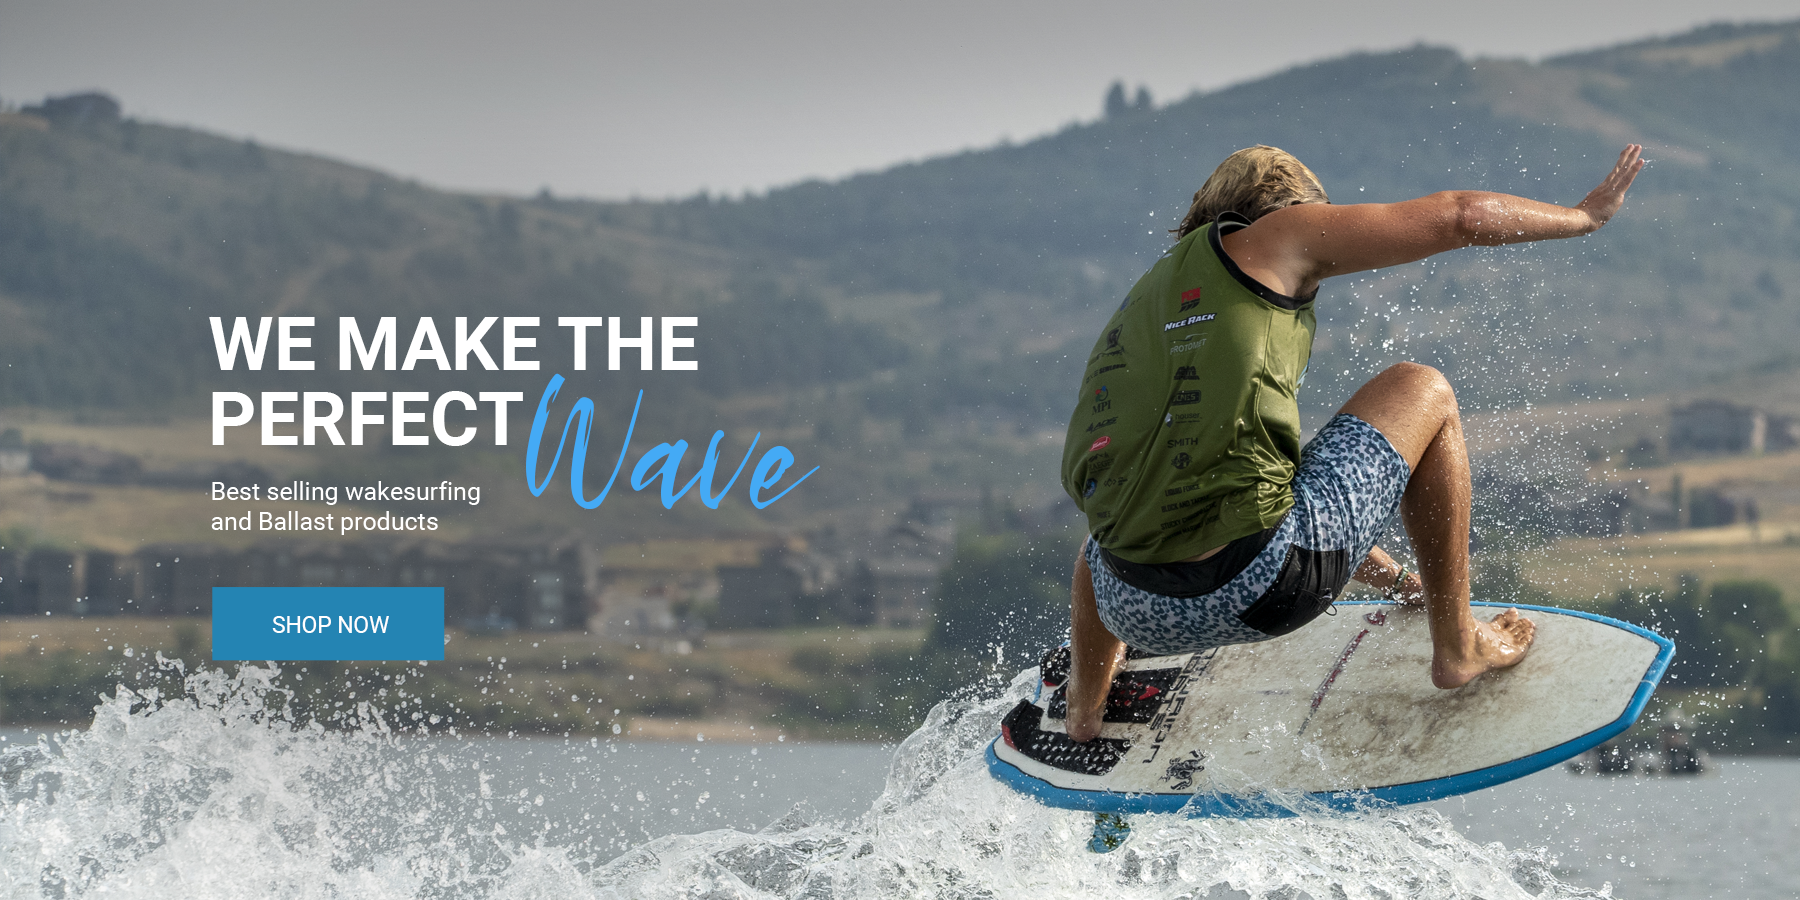 Buy Best Selling Wakesurfing and Ballast Products Online